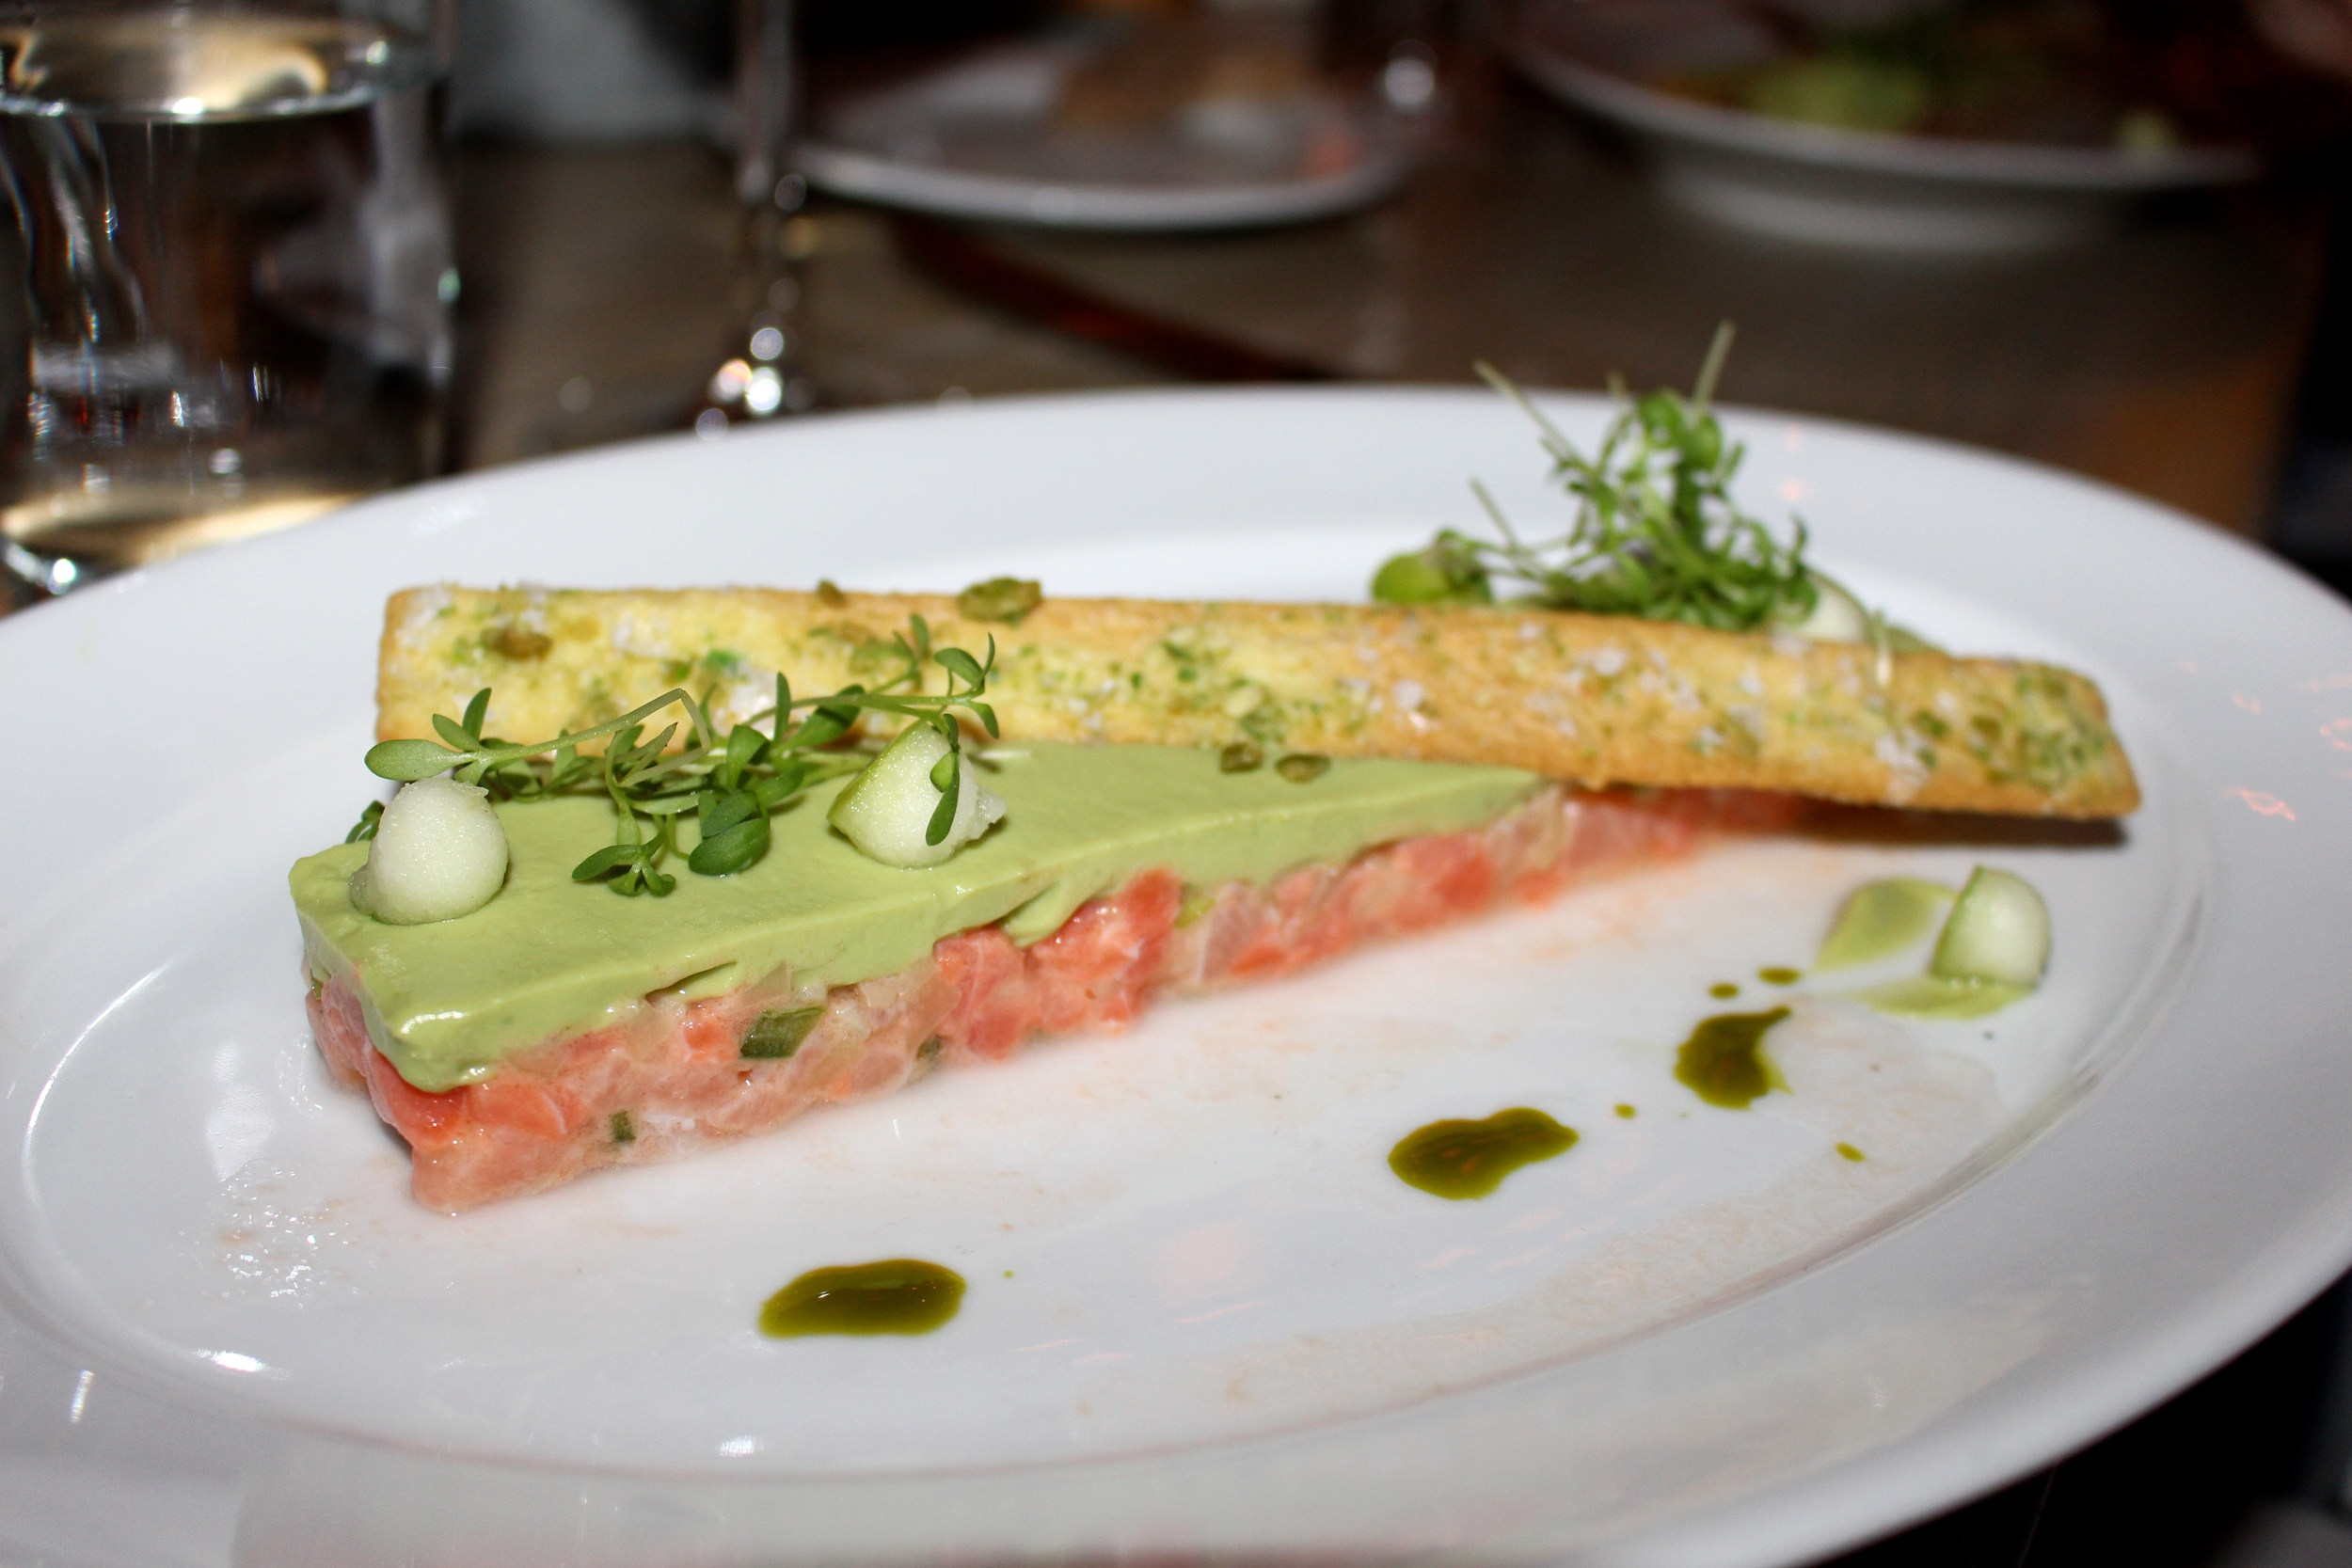 artare of Organic Salmon w/Avocado Cremeux + Spicy Sweet Pea Cracker